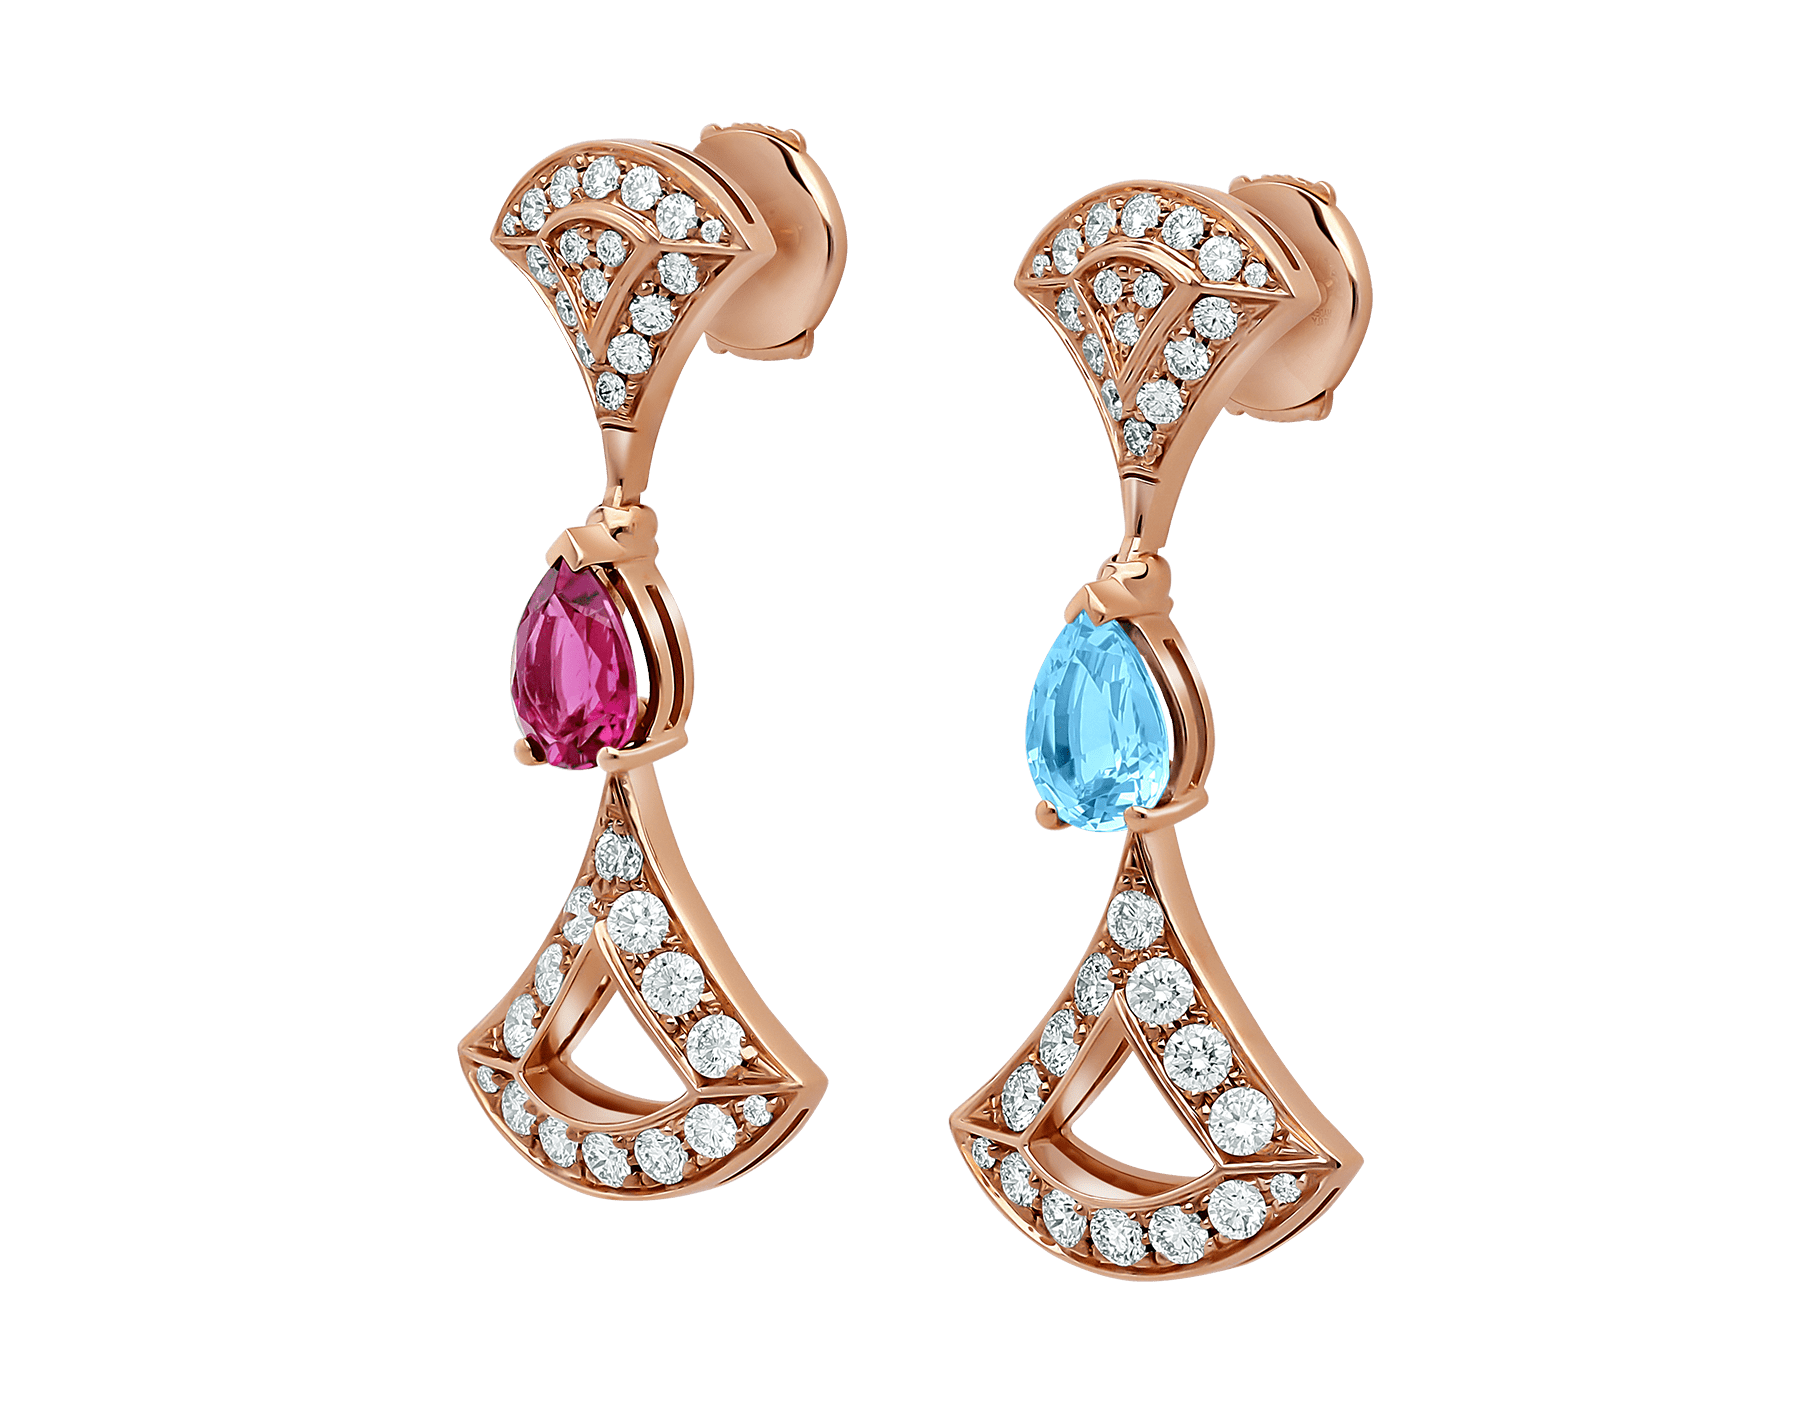 DIVAS' DREAM 18 kt rose gold earrings set with coloured gemstones and pavé diamonds 355620 image 2